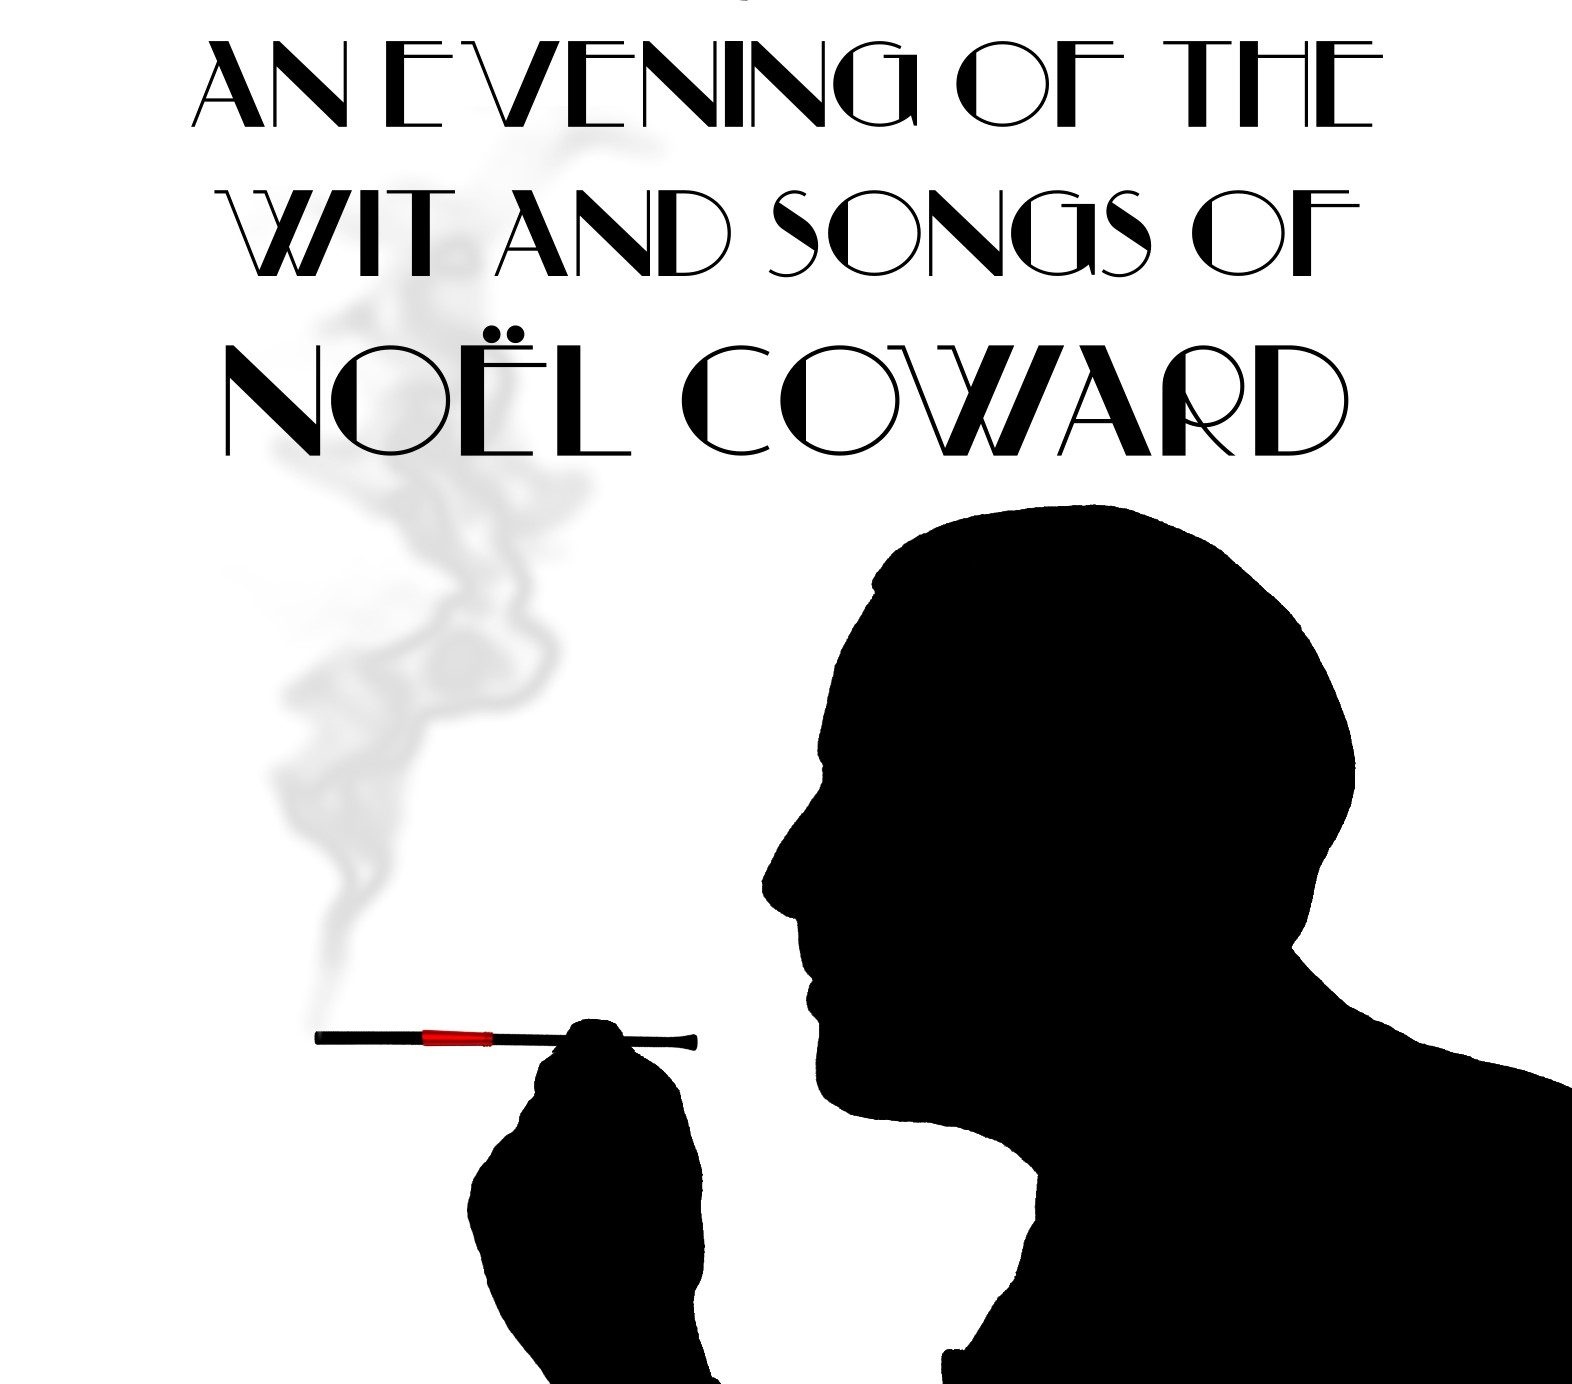 - Playwright, singer, song-writer, raconteur, and wit, Noël Coward is justly honored in the month of June in New York City as it plays host to World Pride 2019.This enchanting soirée, curated by the Noël Coward Society, is presentedon a balmy summer's evening (the church is fully air-conditioned!) in the very heart of Greenwich Village. Interpreted by a talented line-up of performers, the master's songs and verse and wit sparkle through the night.The recital is followed by a Reception in the beautiful St Benedict's Courtyard.For information and booking click here.